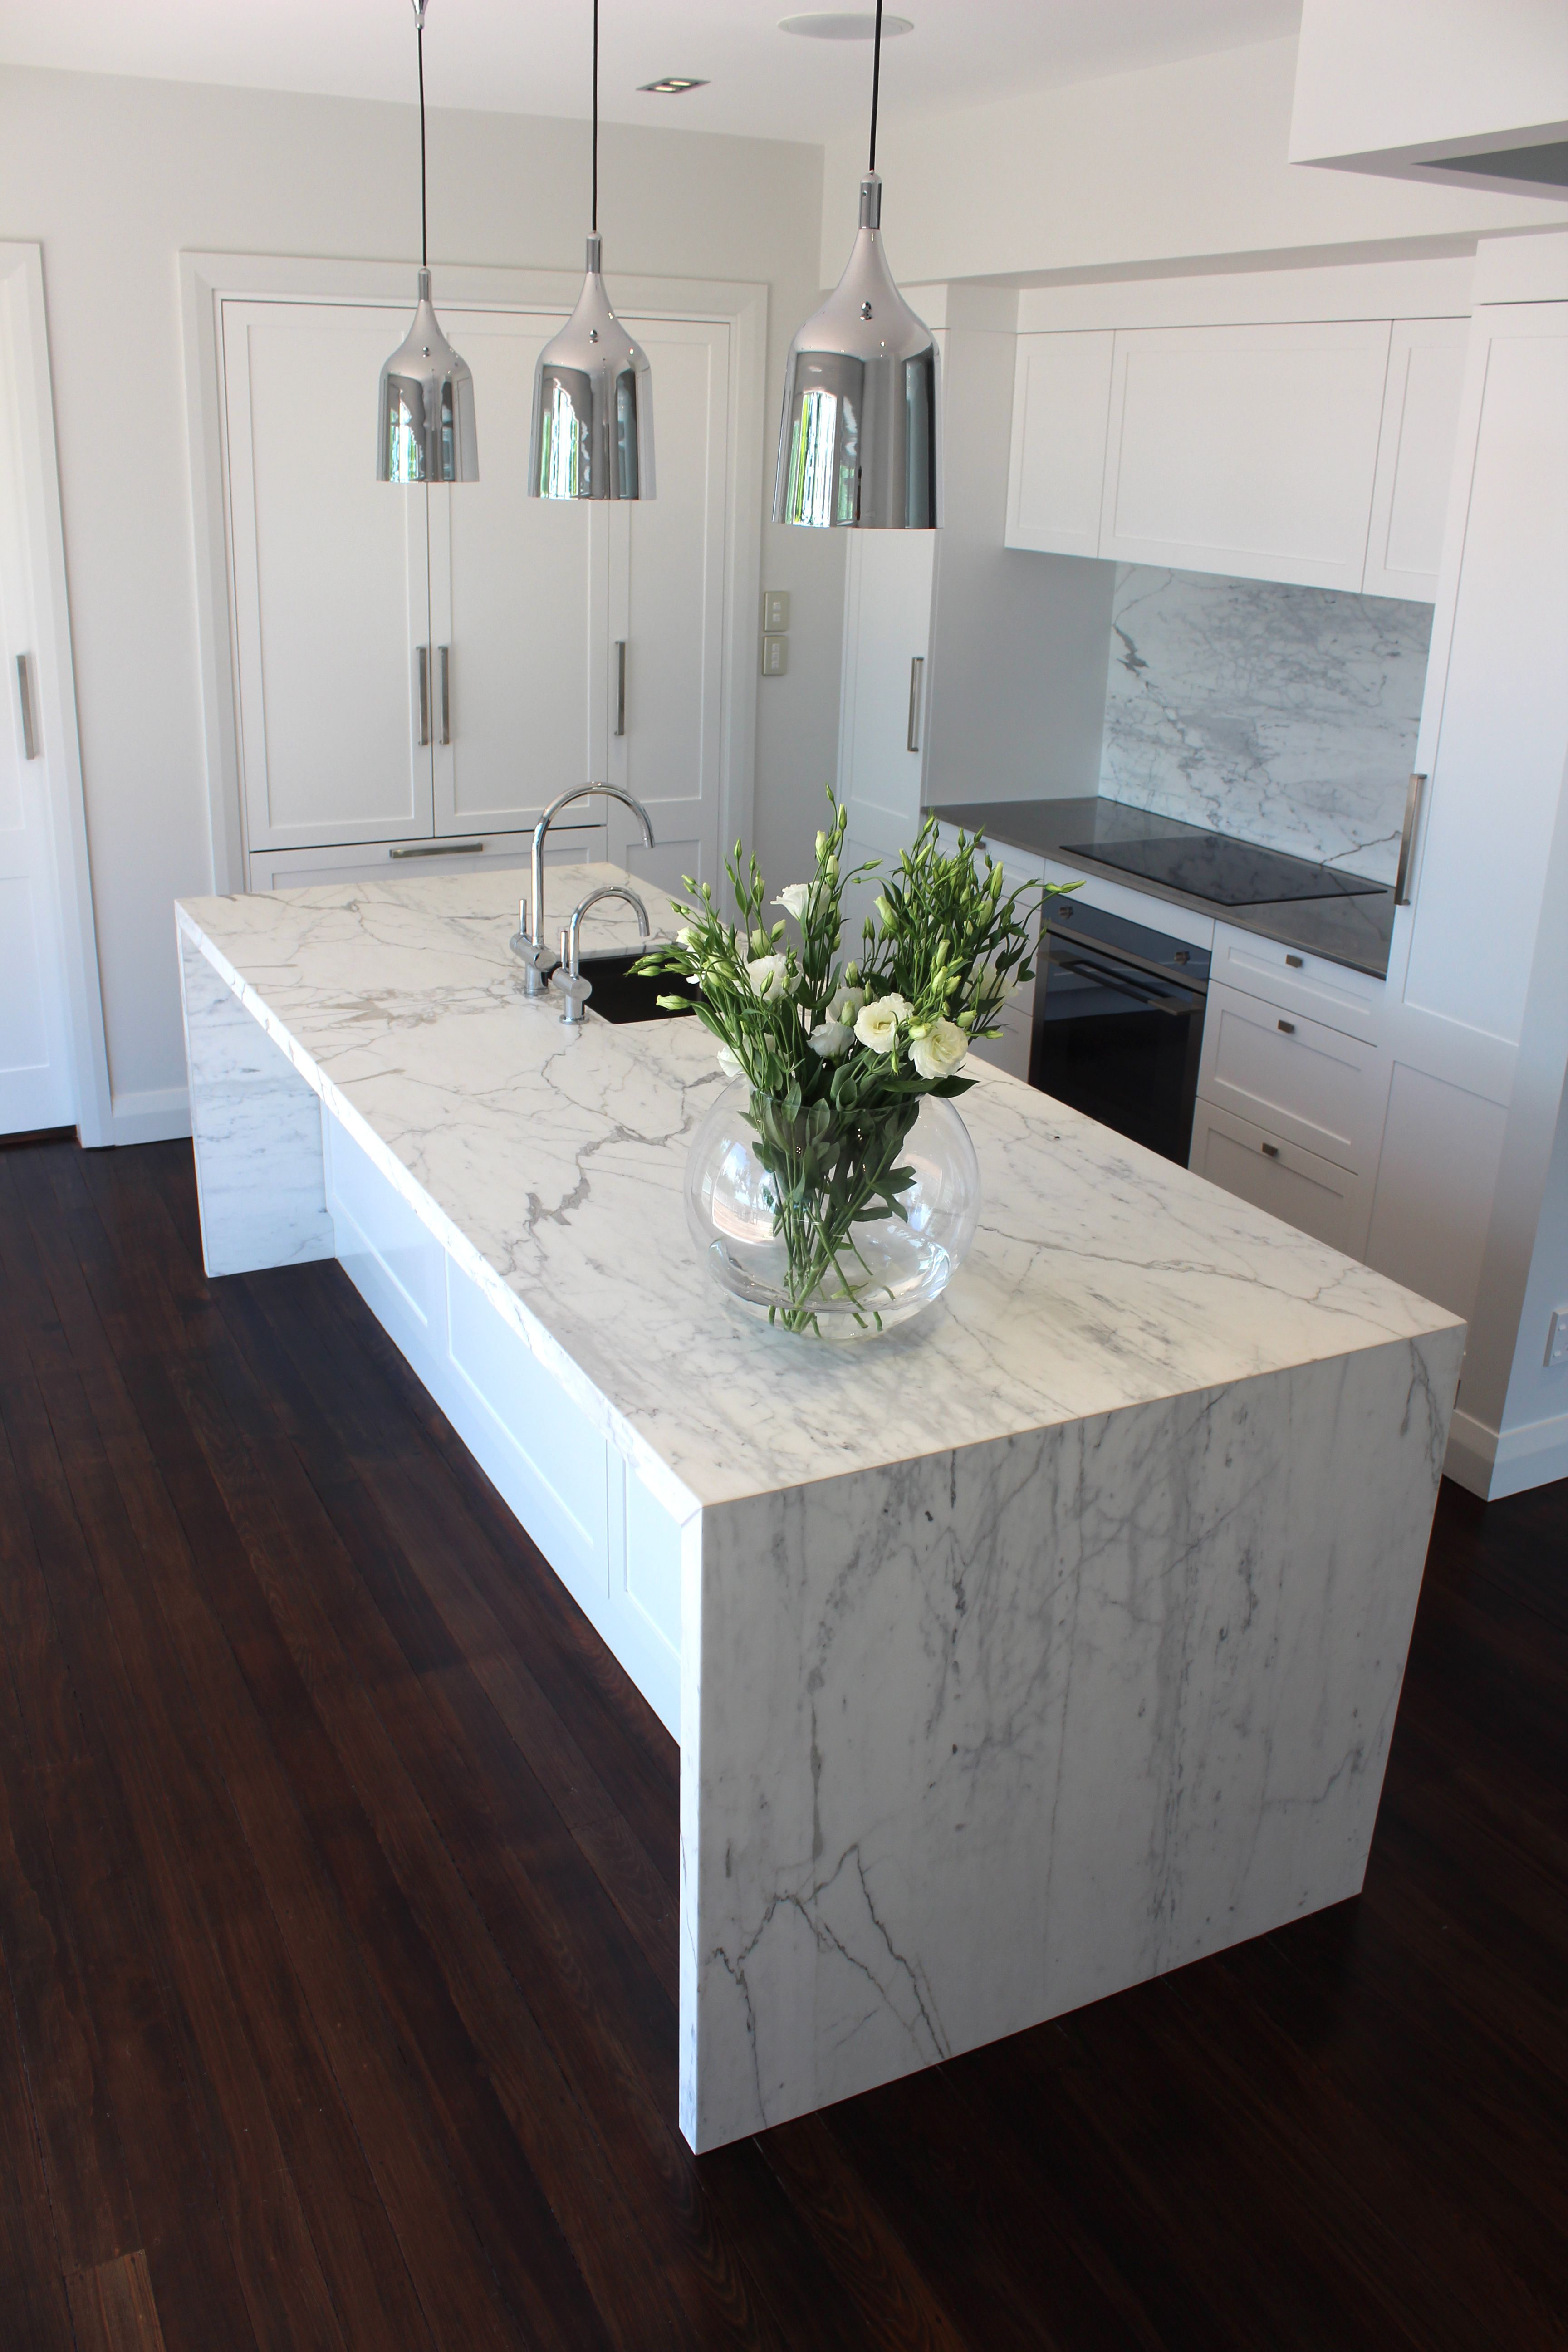 carrara is grayish virginia most more the has countertop where popular white there stone countertops low marble far cararra undertones snow by levels quality typically are different worlds pure top concepts it of